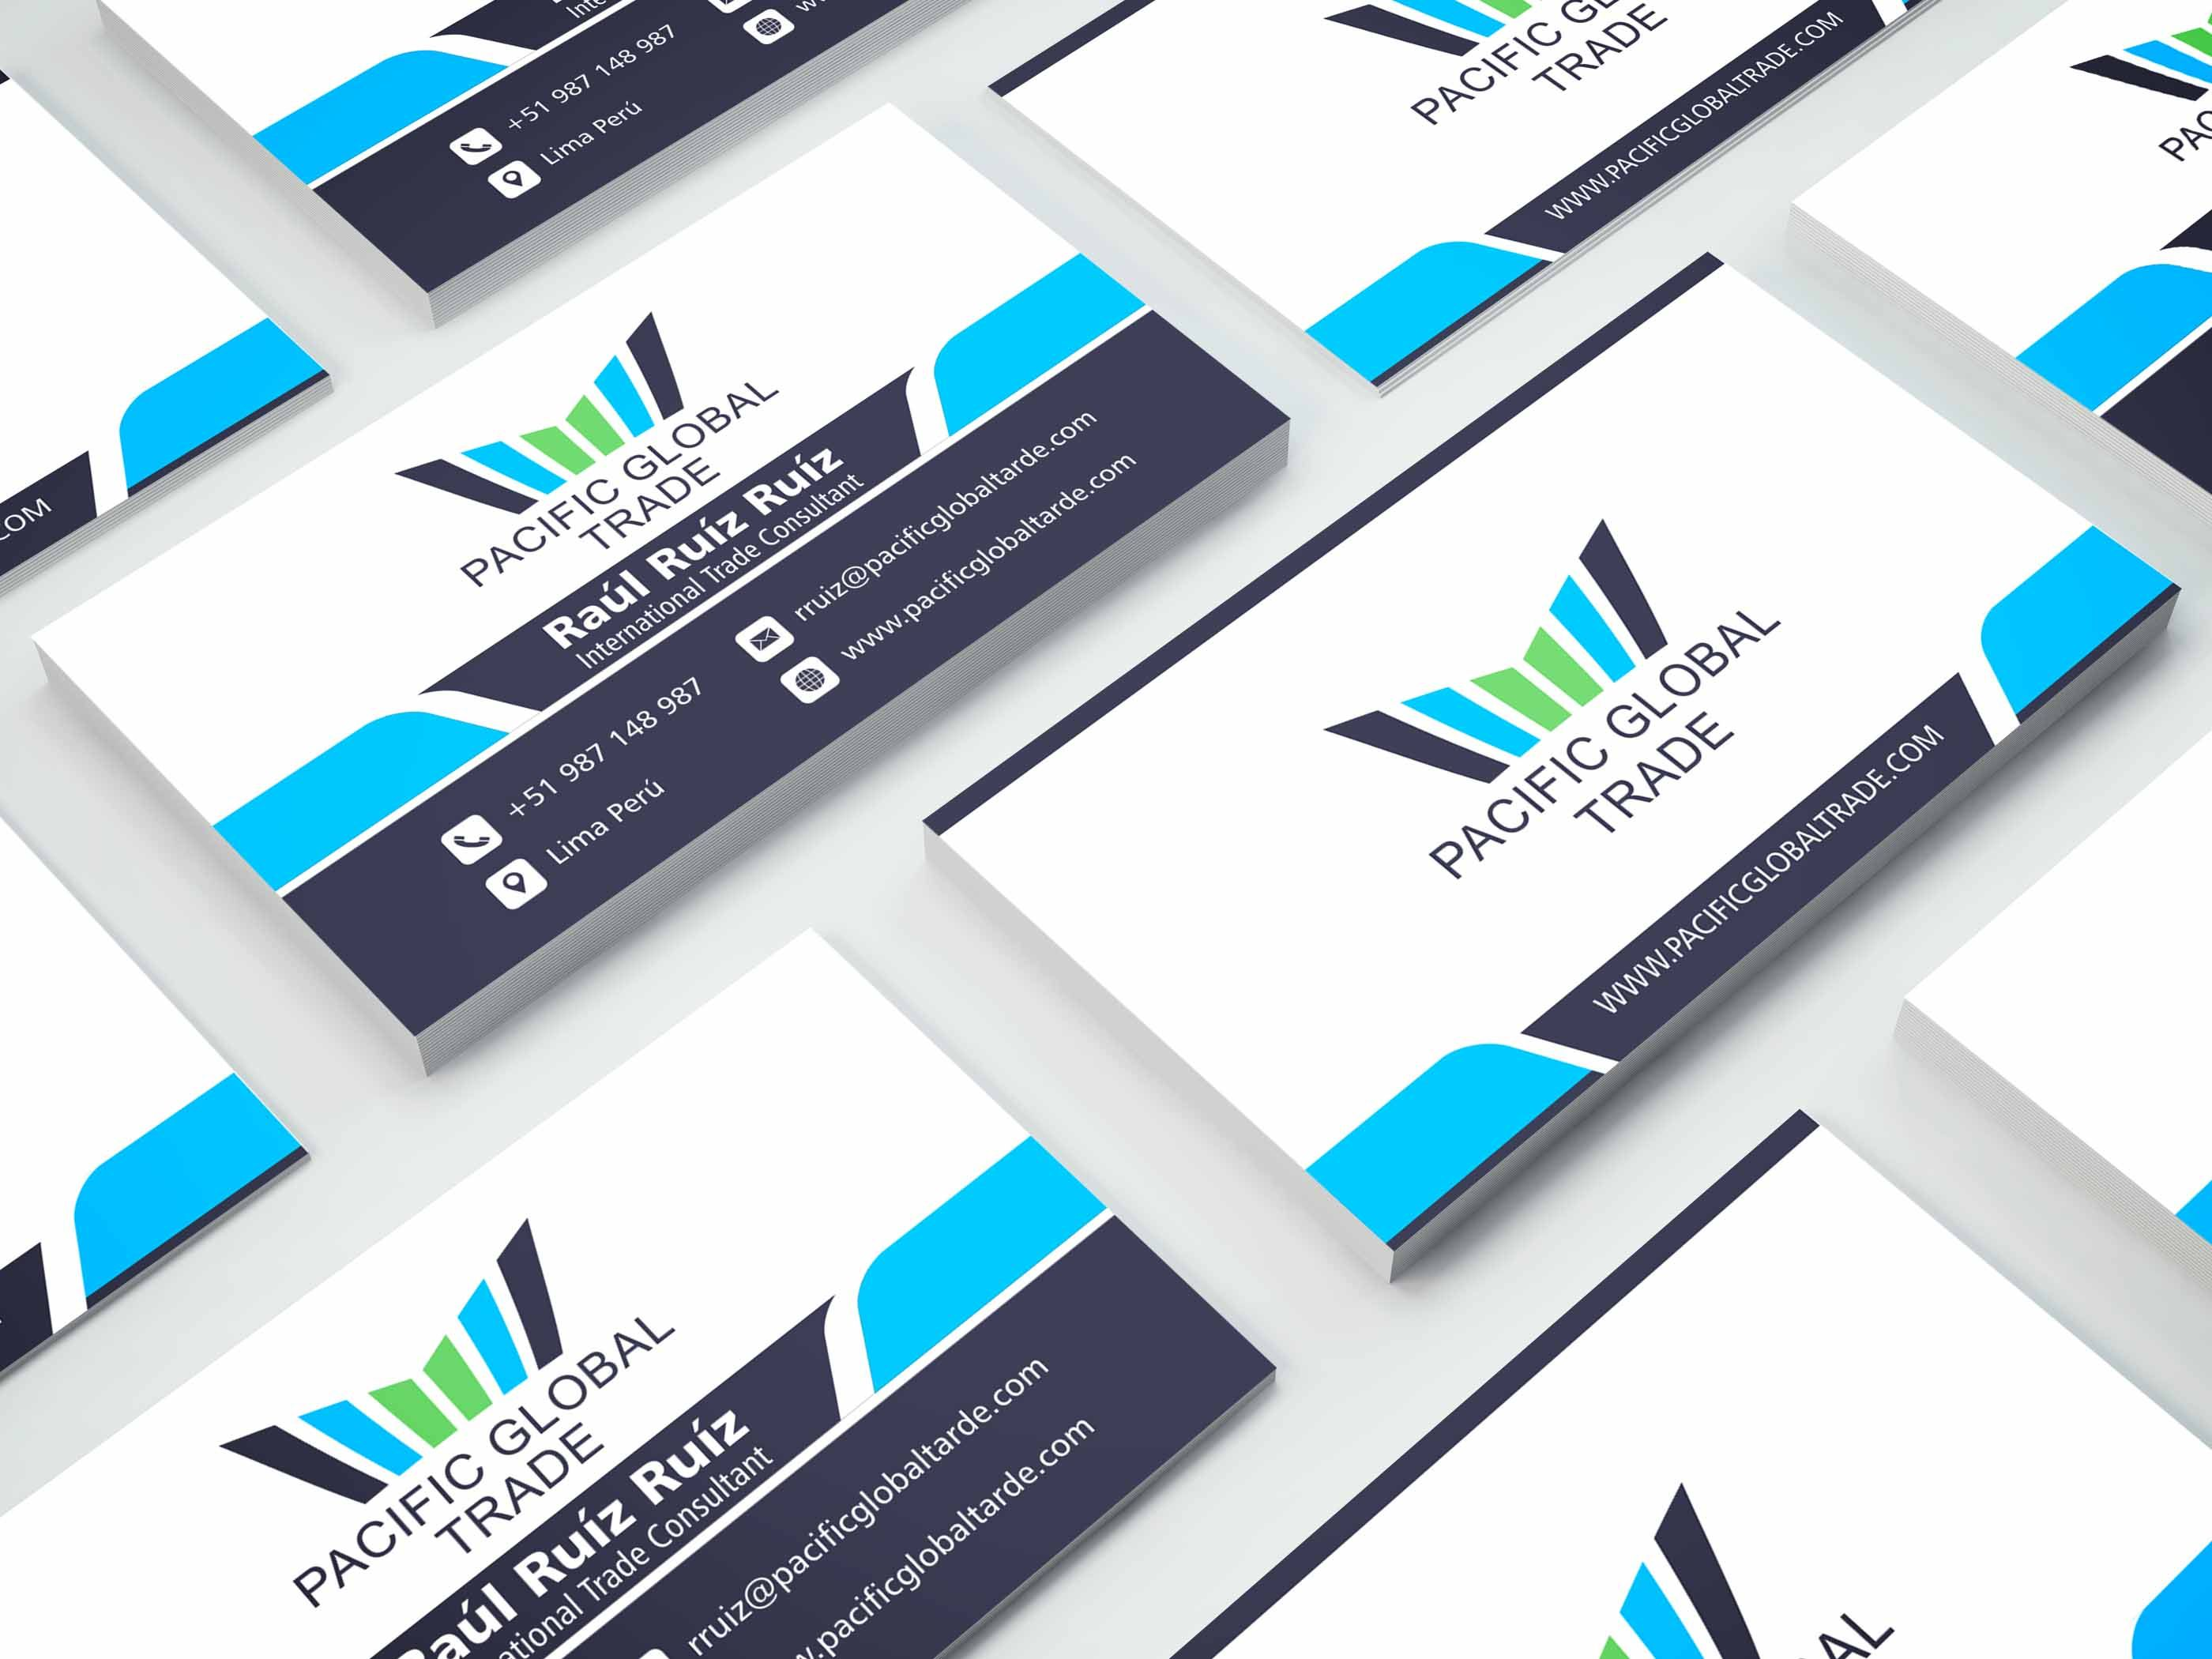 Shahzadabutt I Will Design Professional Double Sided Business Card For 10 On Fiverr Com Business Card Design Professional Business Card Design Double Sided Business Cards